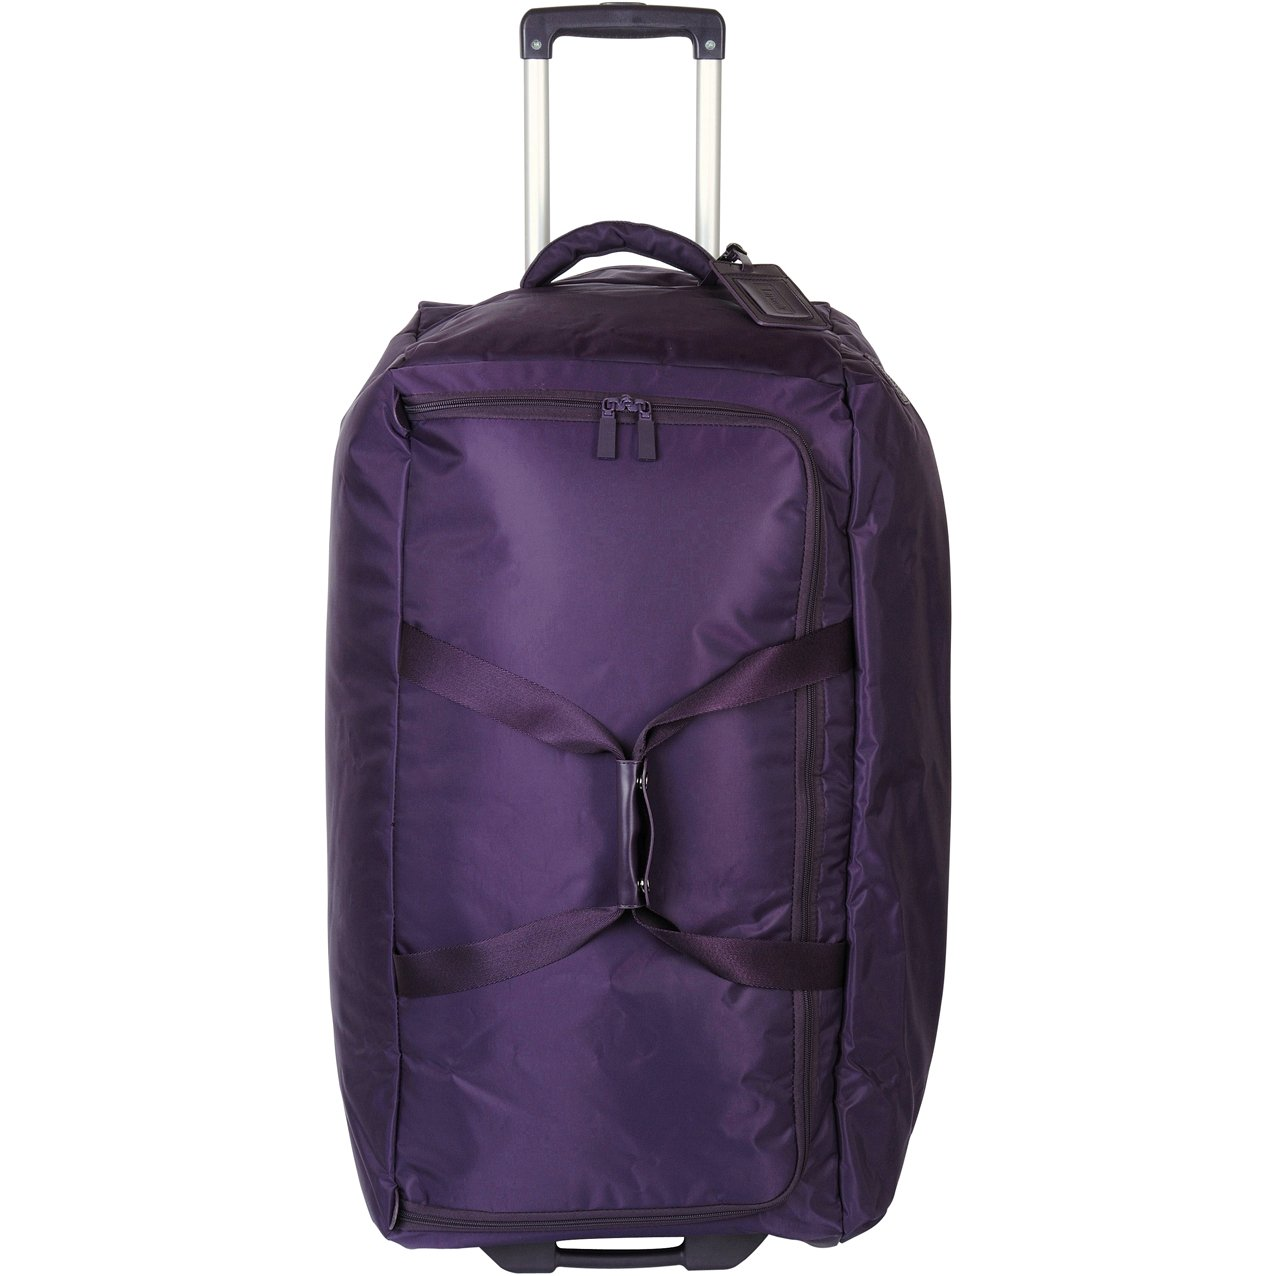 Lipault Duffle Bag Luggage Foldable 2 Wheeled Suitcase  Purple, 30 inch by Lipault